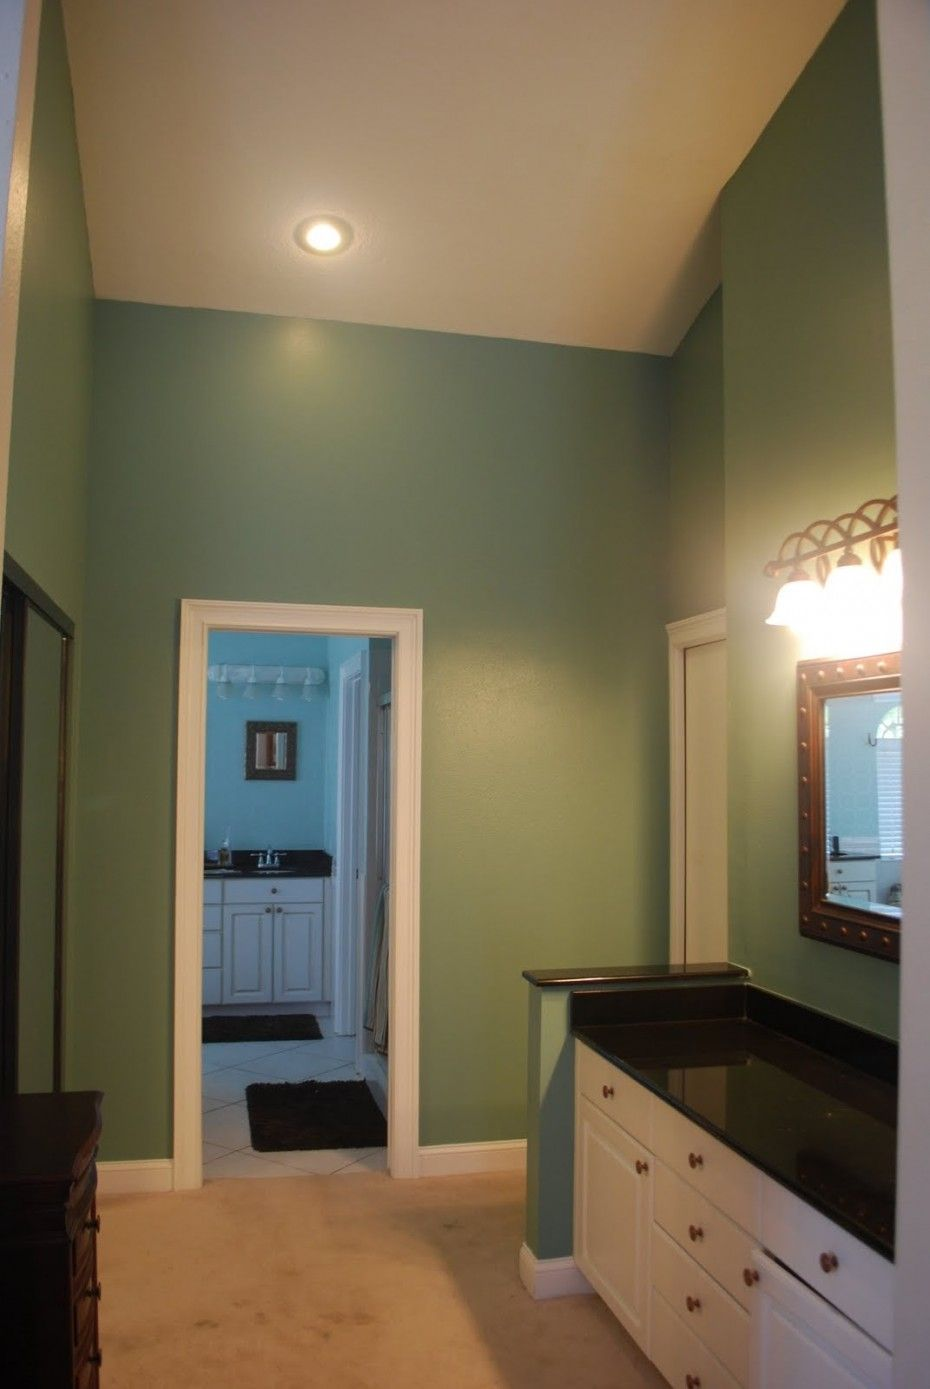 Bathroom paint colors ideas warm green bathroom painting for Bathroom designs paint